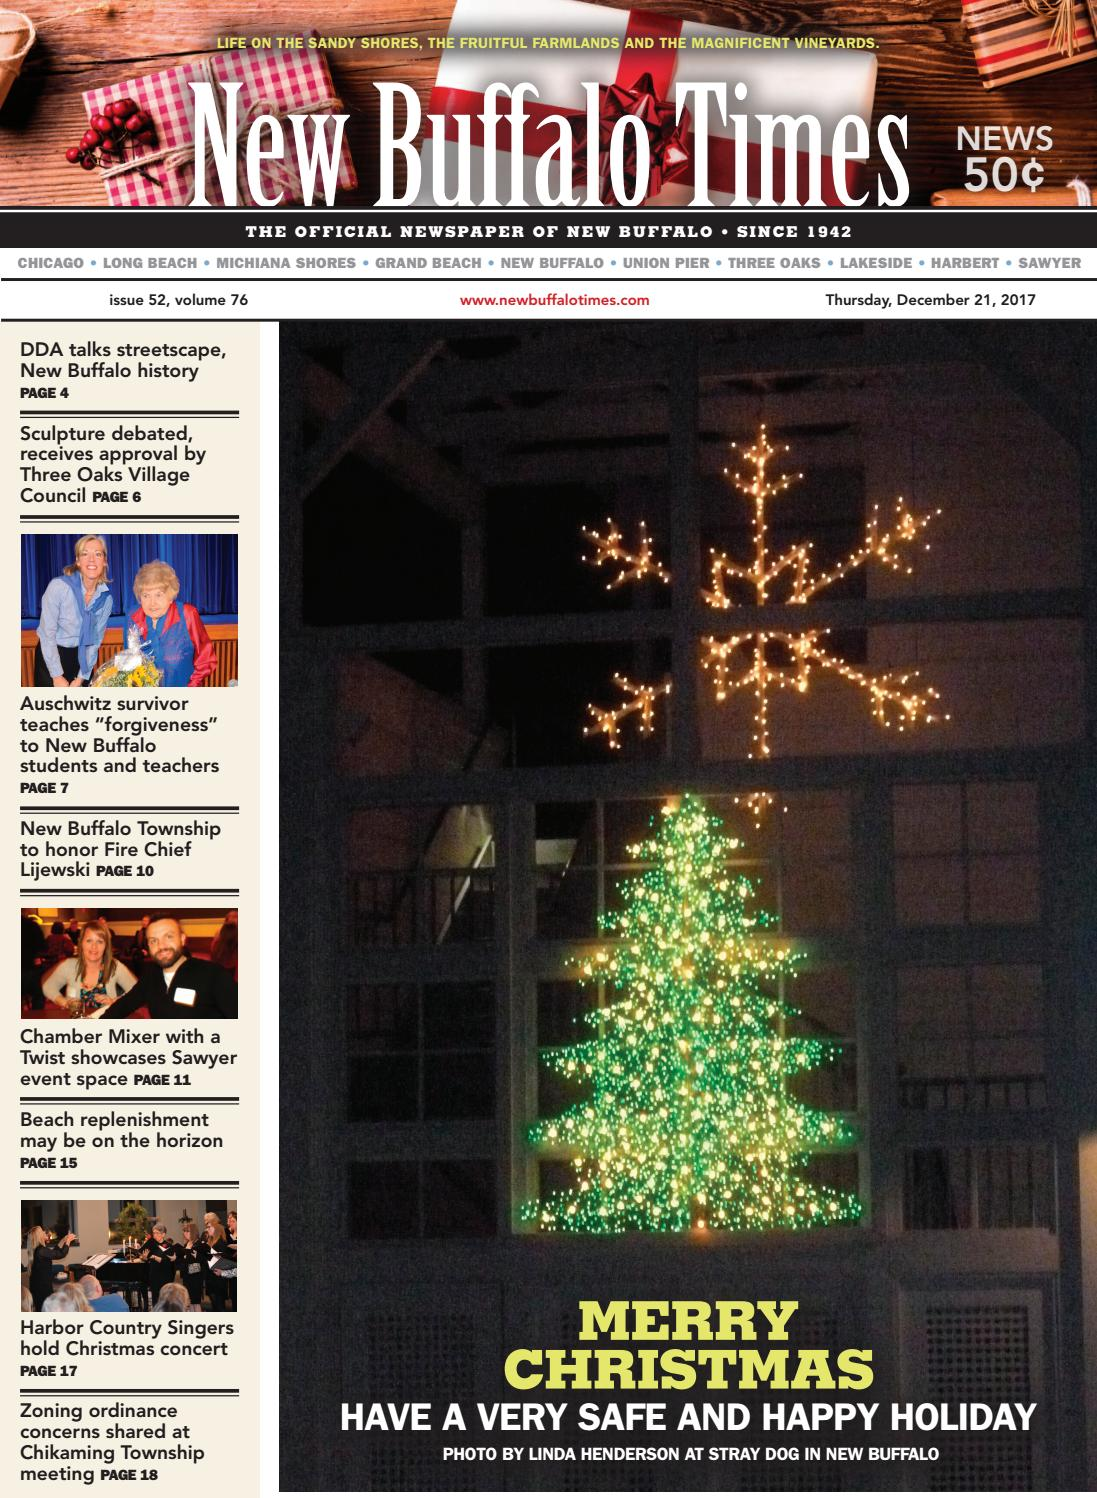 Garden View Christmas Party December 21 2020 In Calumey Michigan December 21, 2017 by New Buffalo Times   issuu